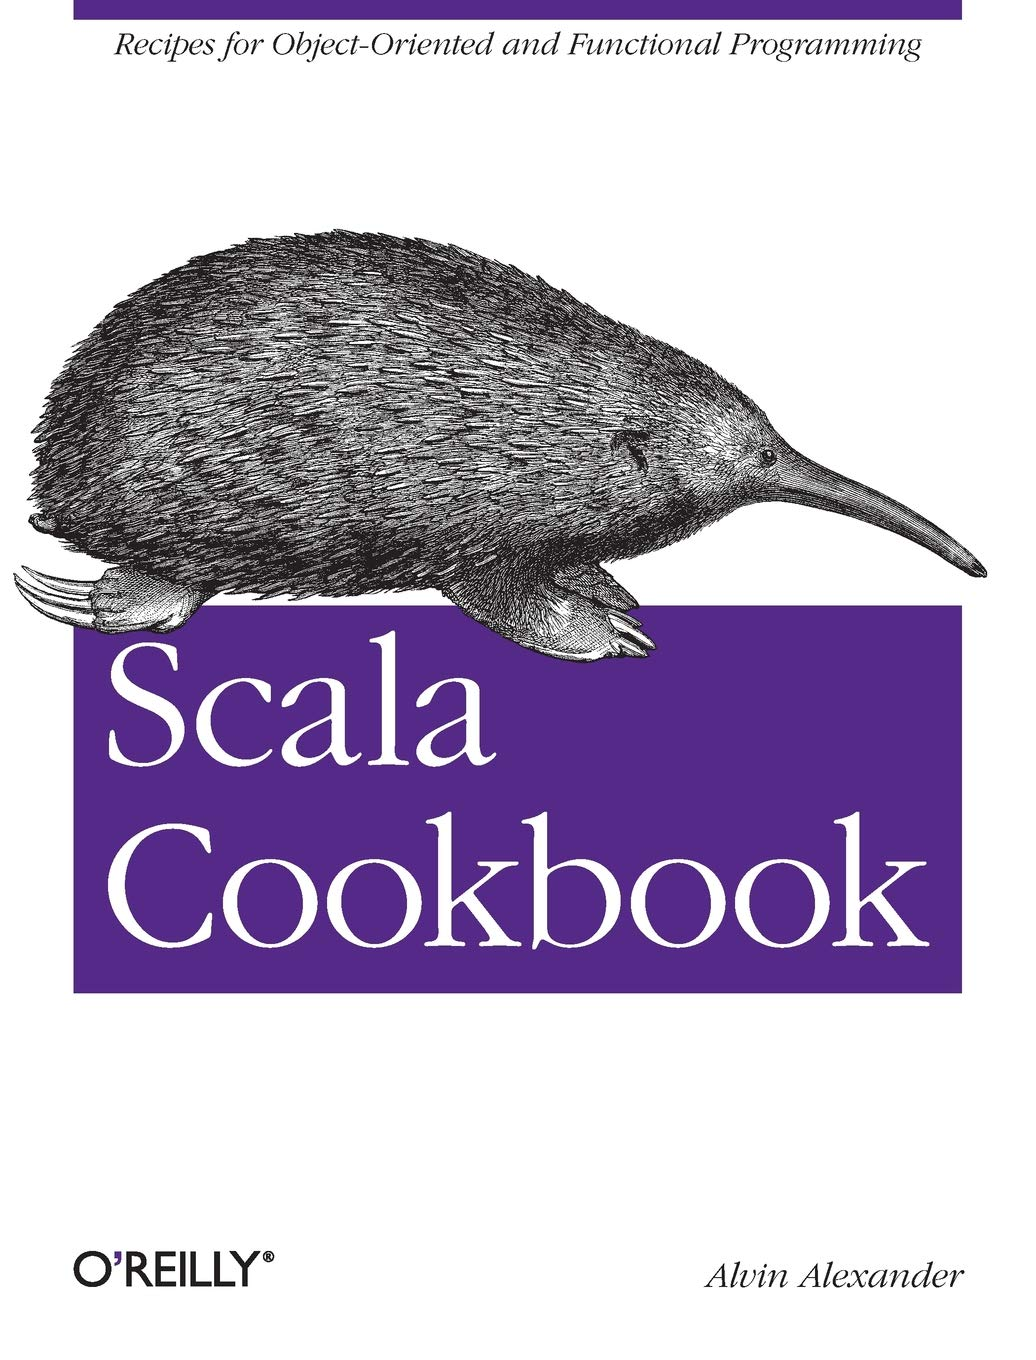 Image OfScala Cookbook: Recipes For Object-Oriented And Functional Programming